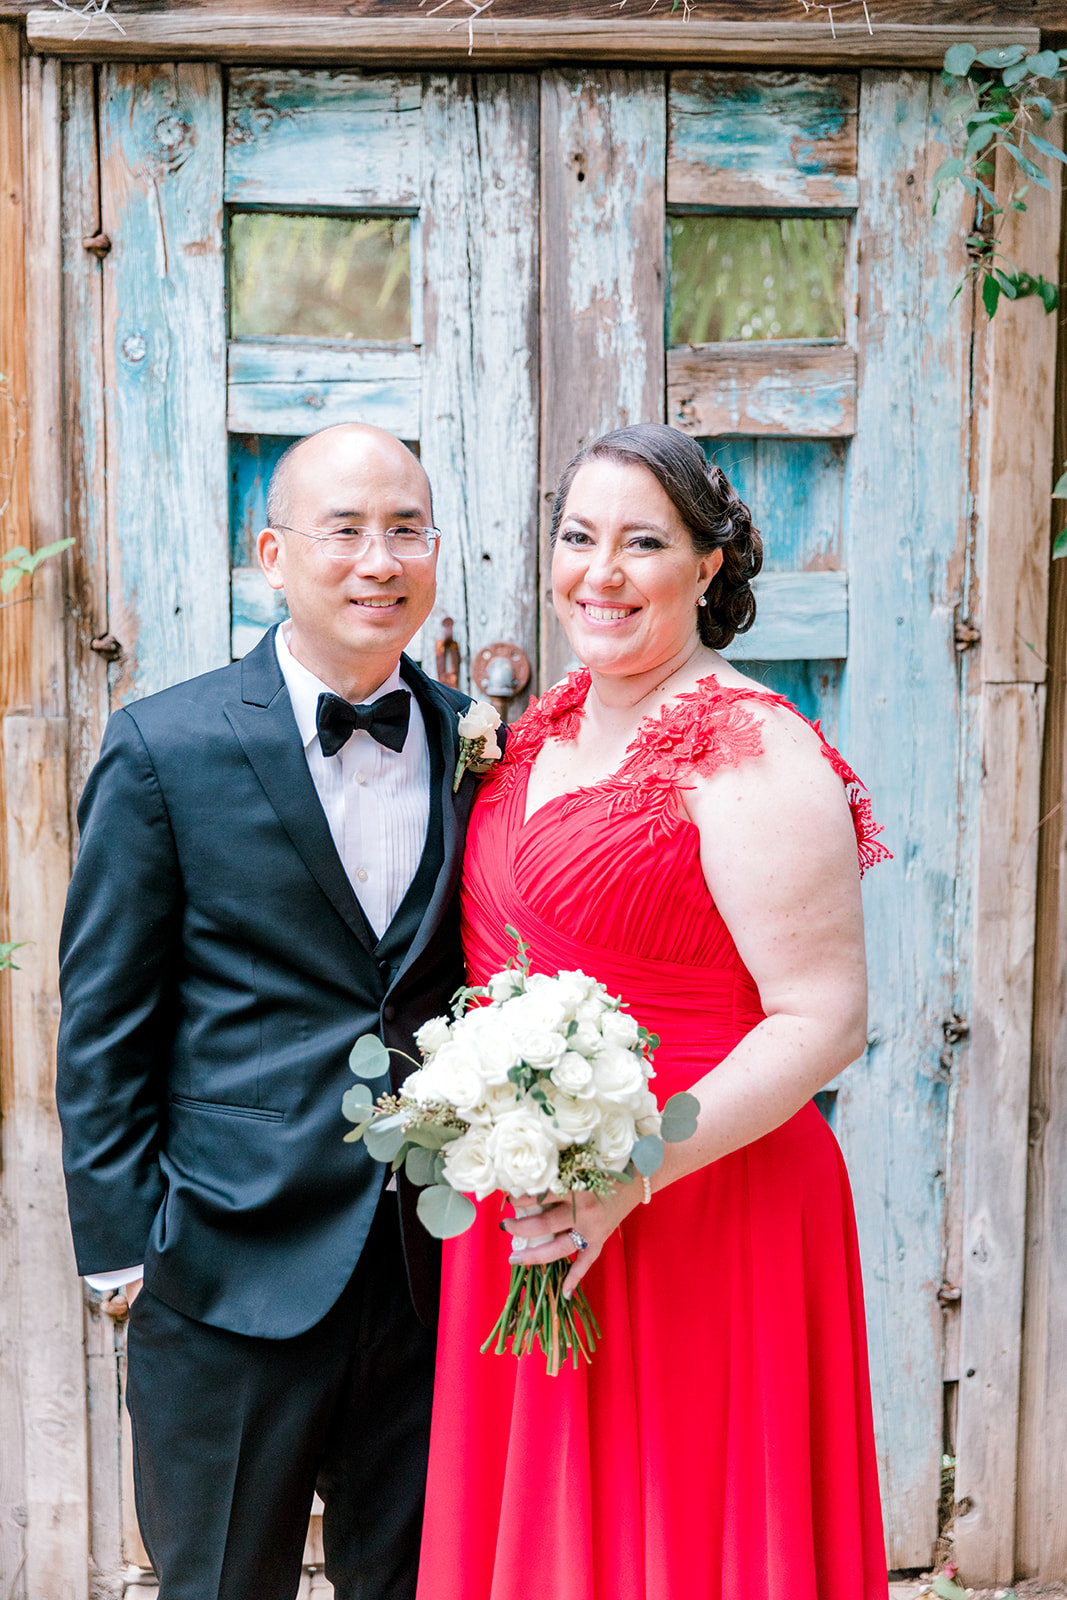 newlyweds wearing tux and custom red wedding dress